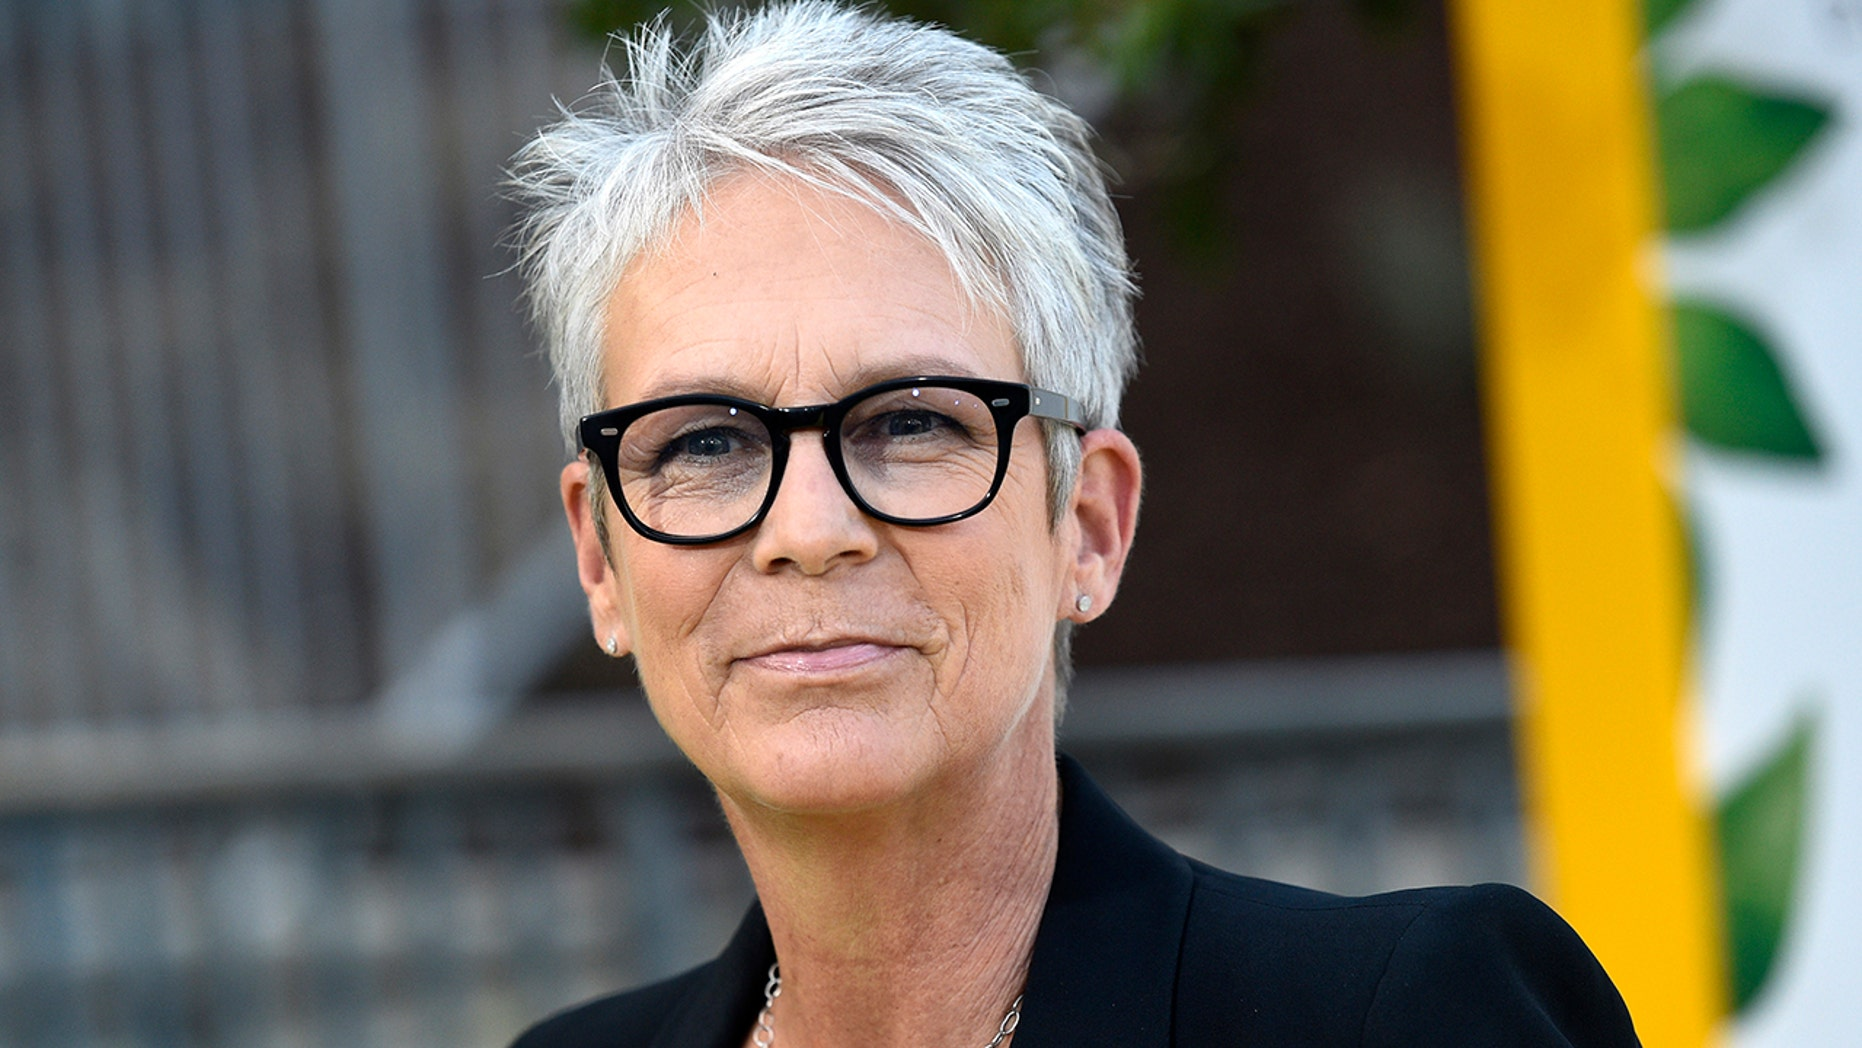 Jamie Lee Curtis on guns: Supports both 2A, gun bans